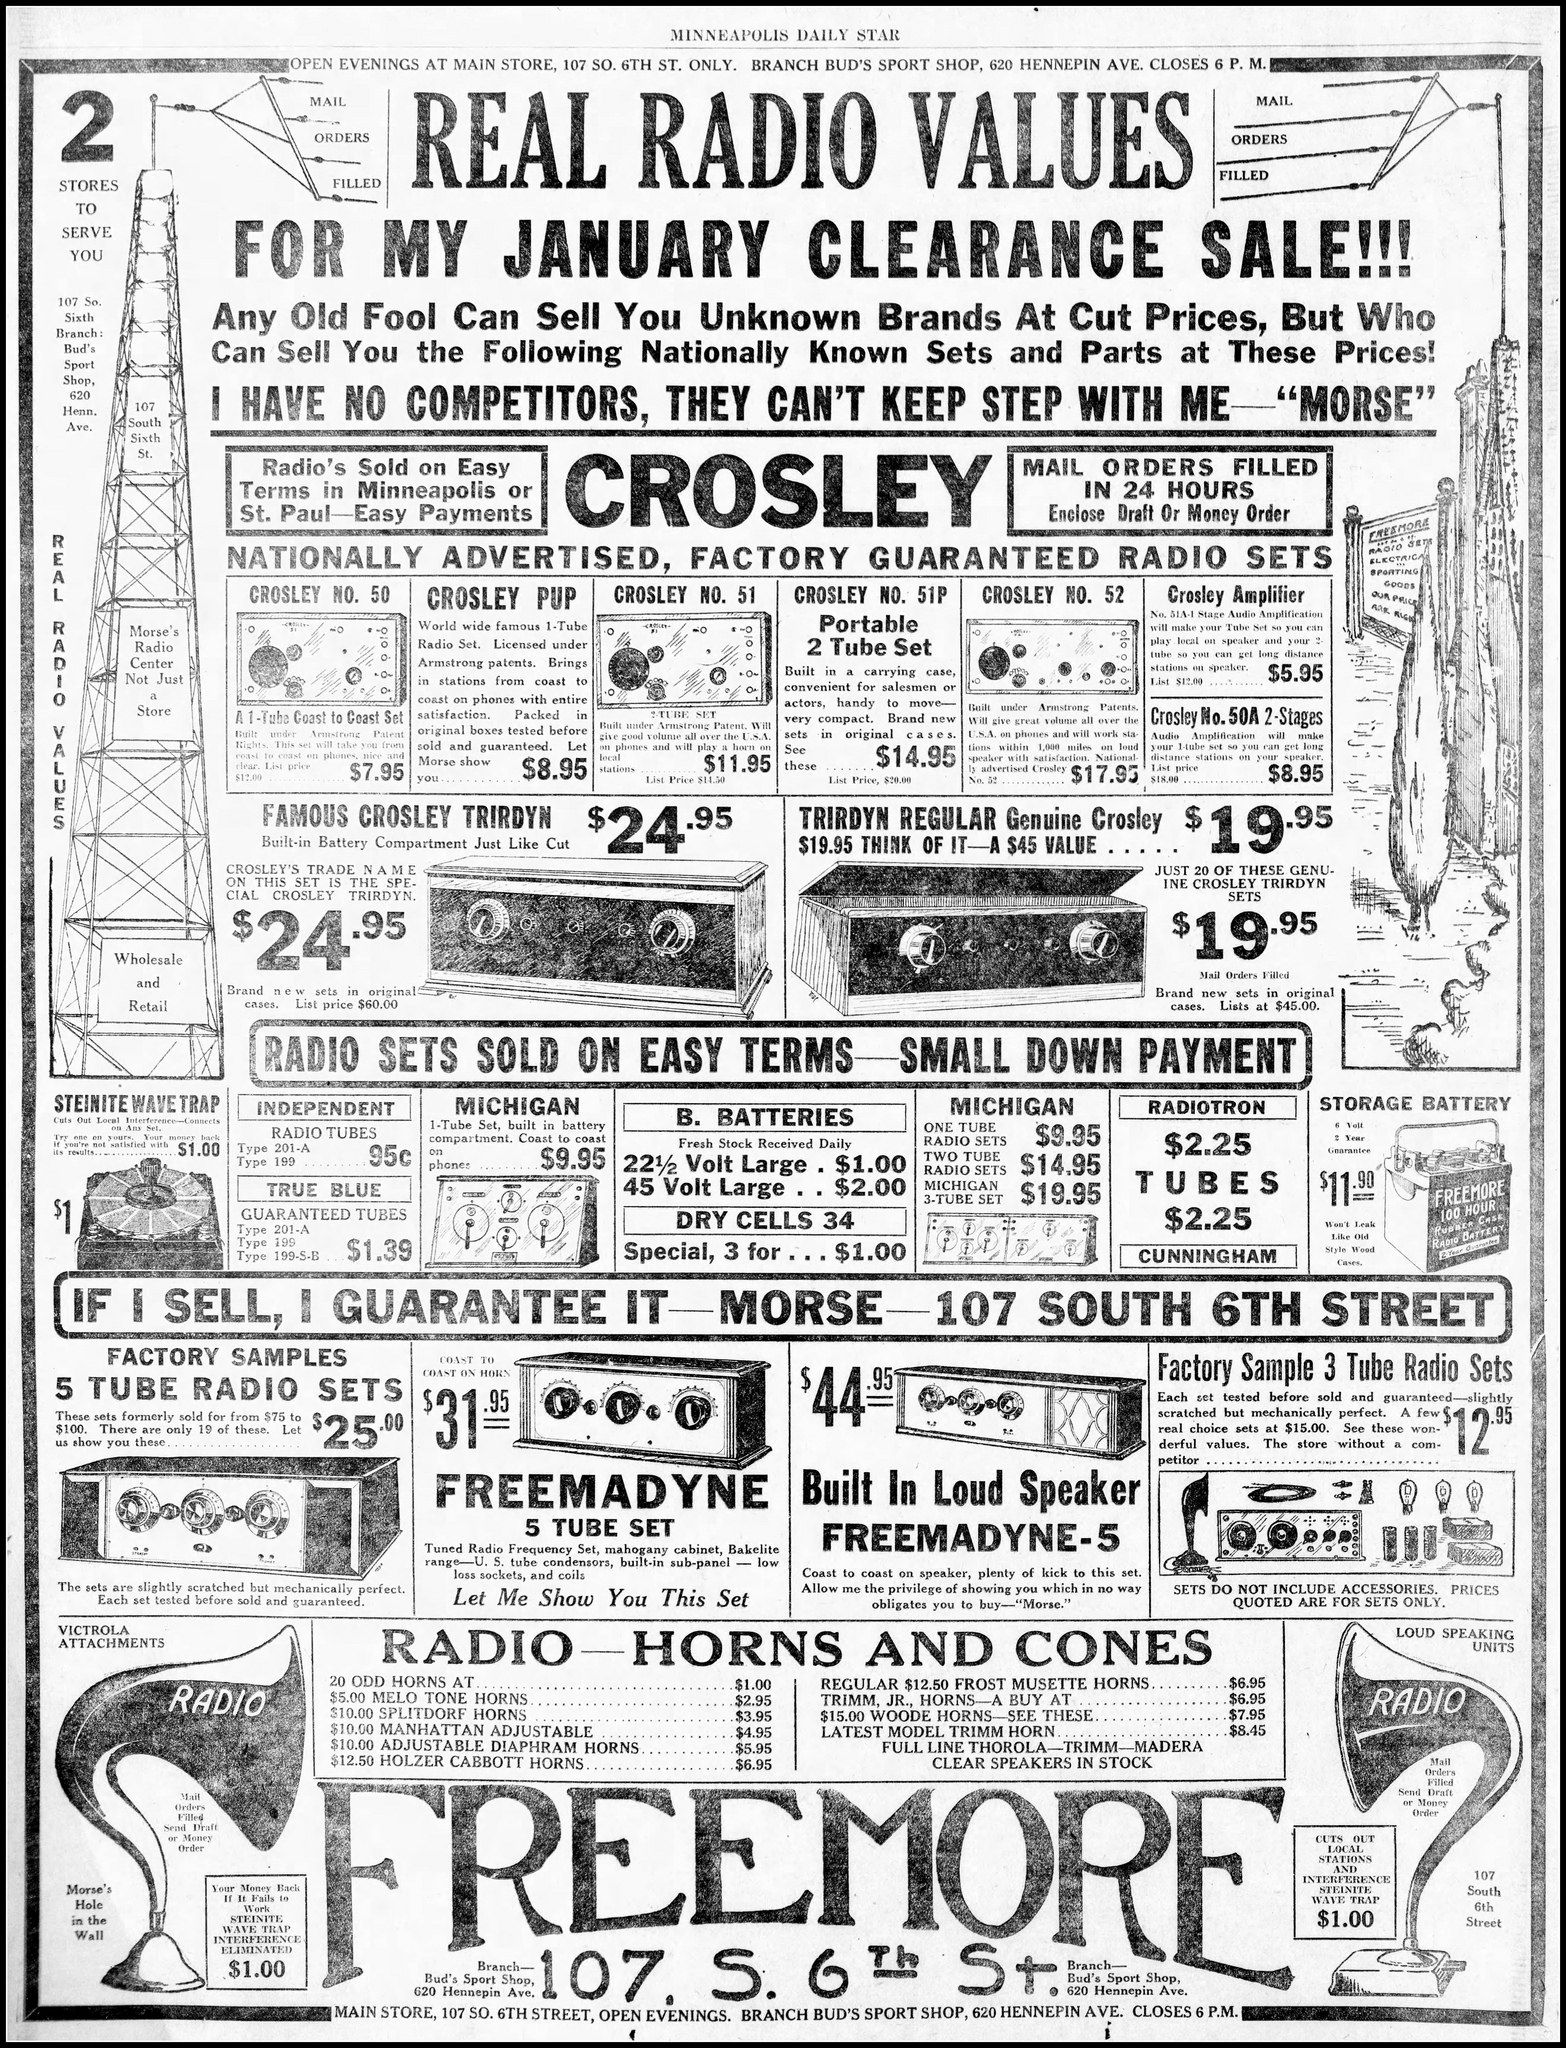 Vintage Newspaper Advertising For 1920s Era Radios In The